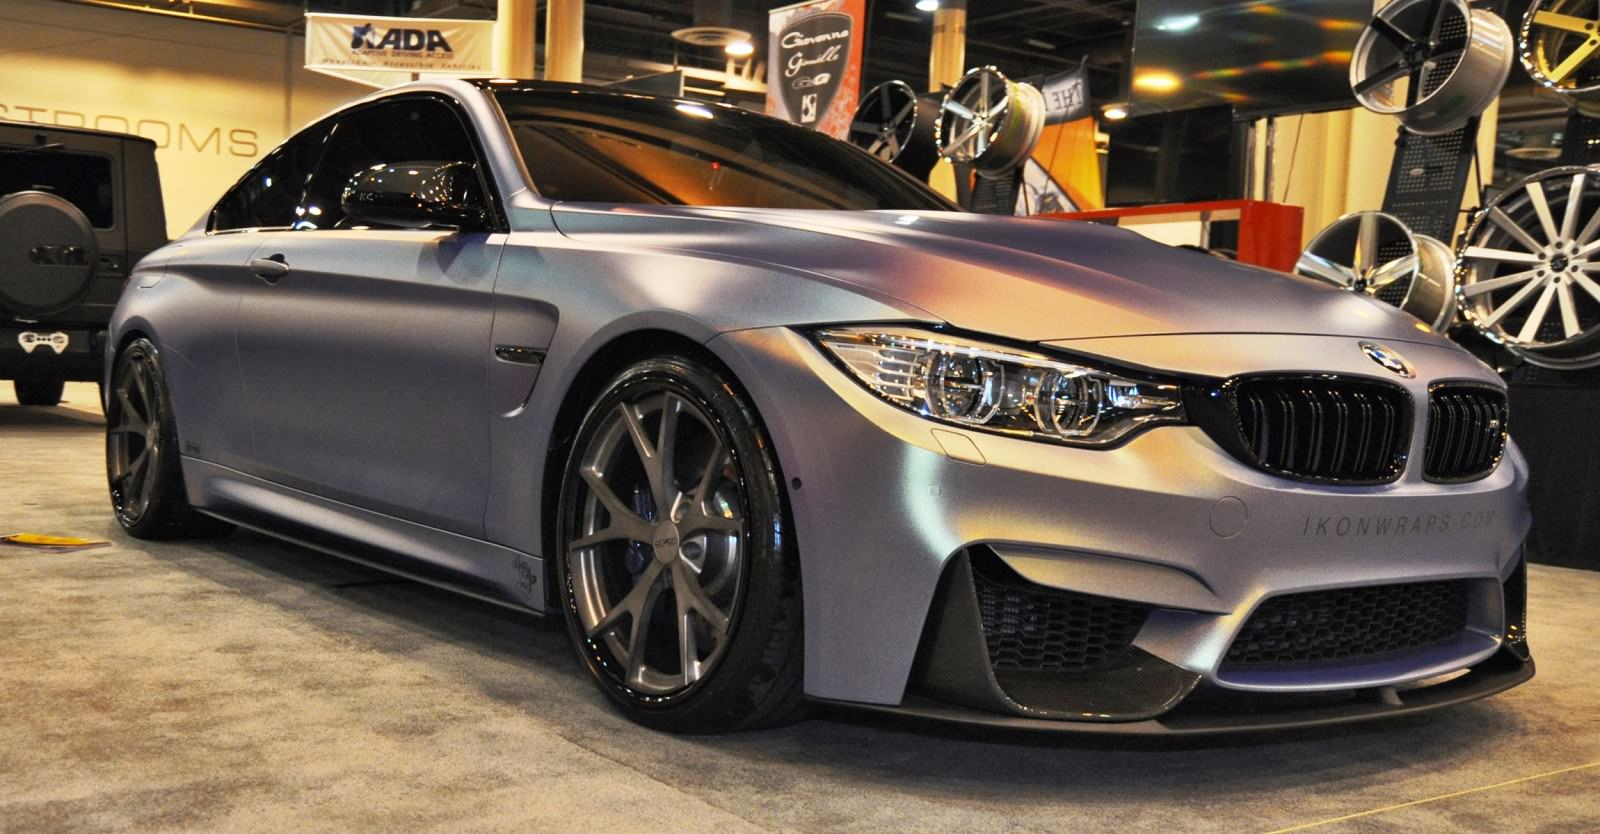 2015 bmw m4 by ikon wraps. Black Bedroom Furniture Sets. Home Design Ideas